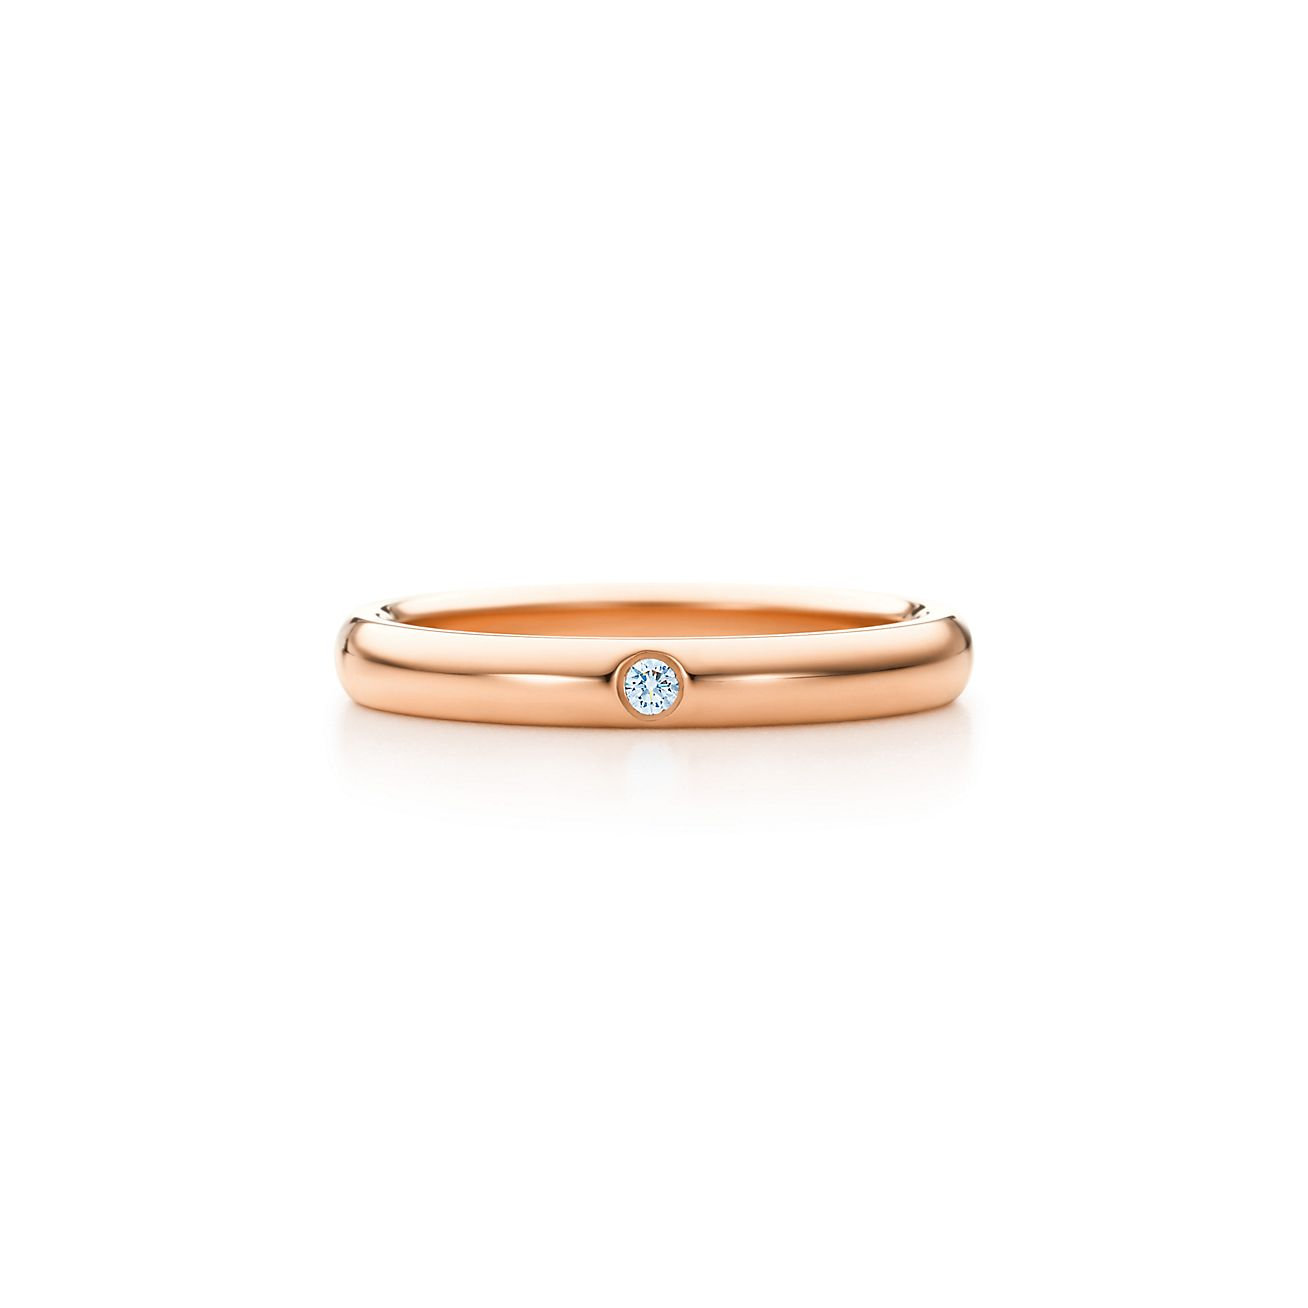 mv hover gold to textured wedding bands kaystore kay zoom band zm en rose